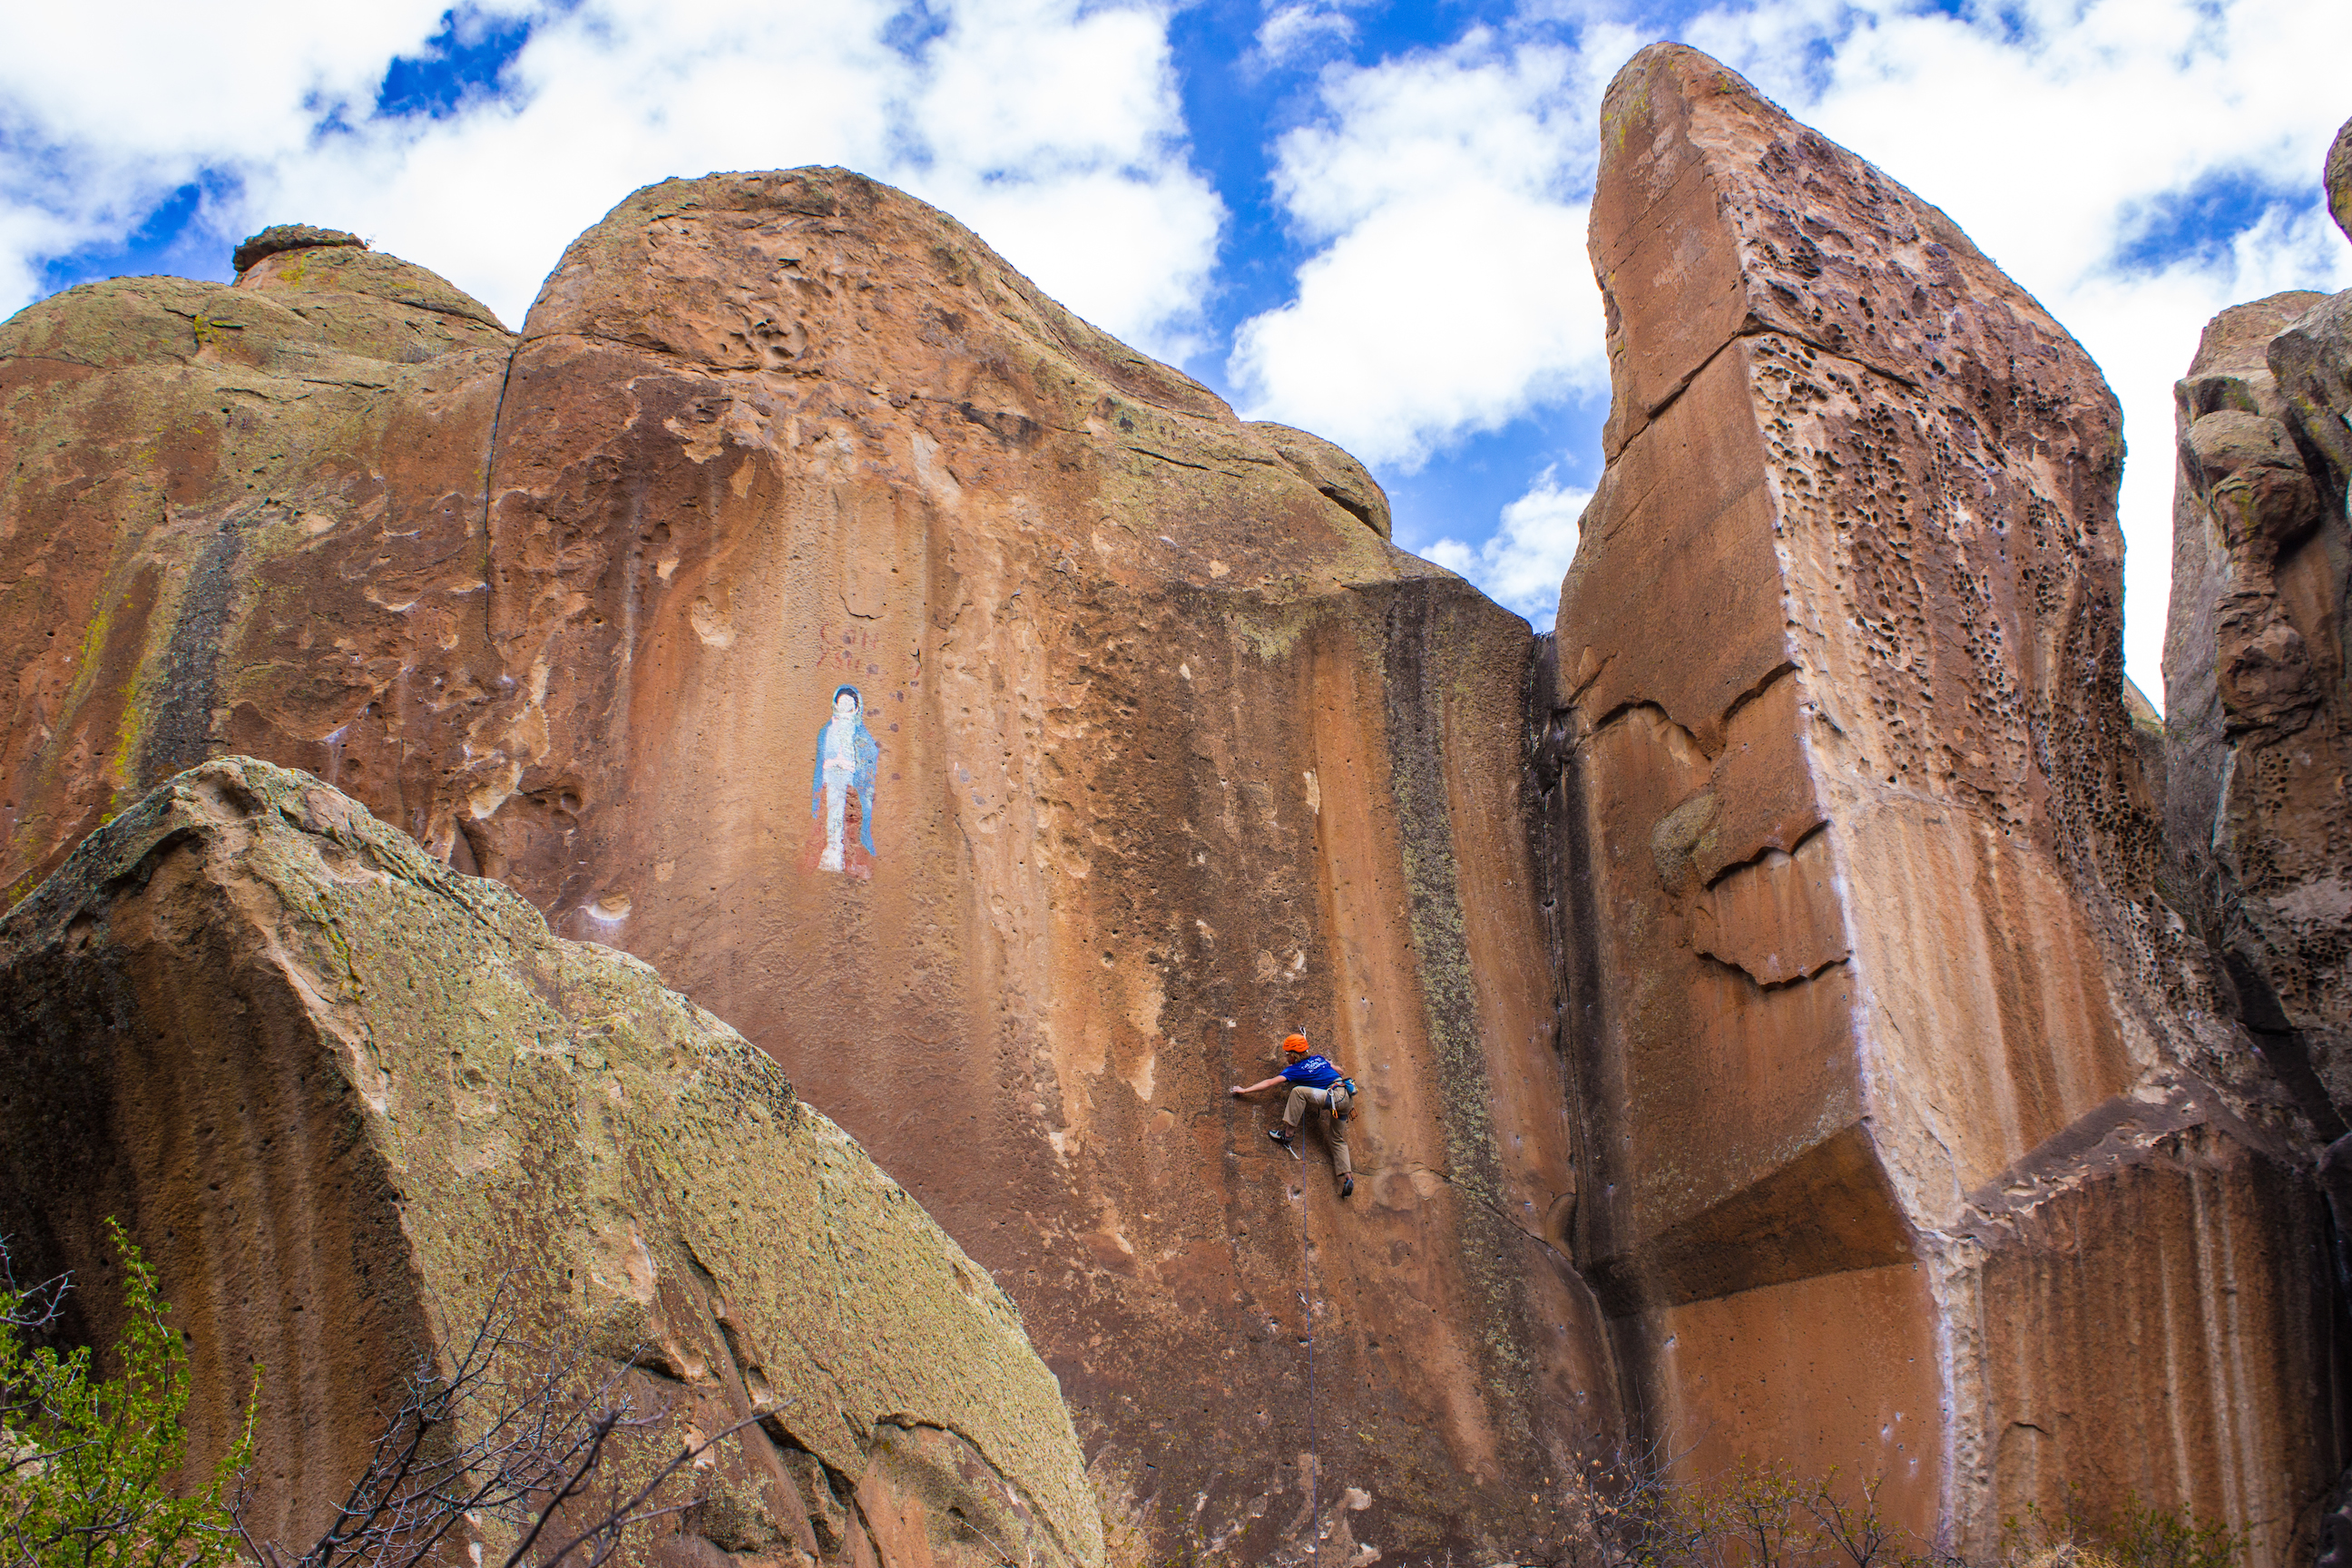 5 Reasons to Climb in Penitente Canyon This Weekend